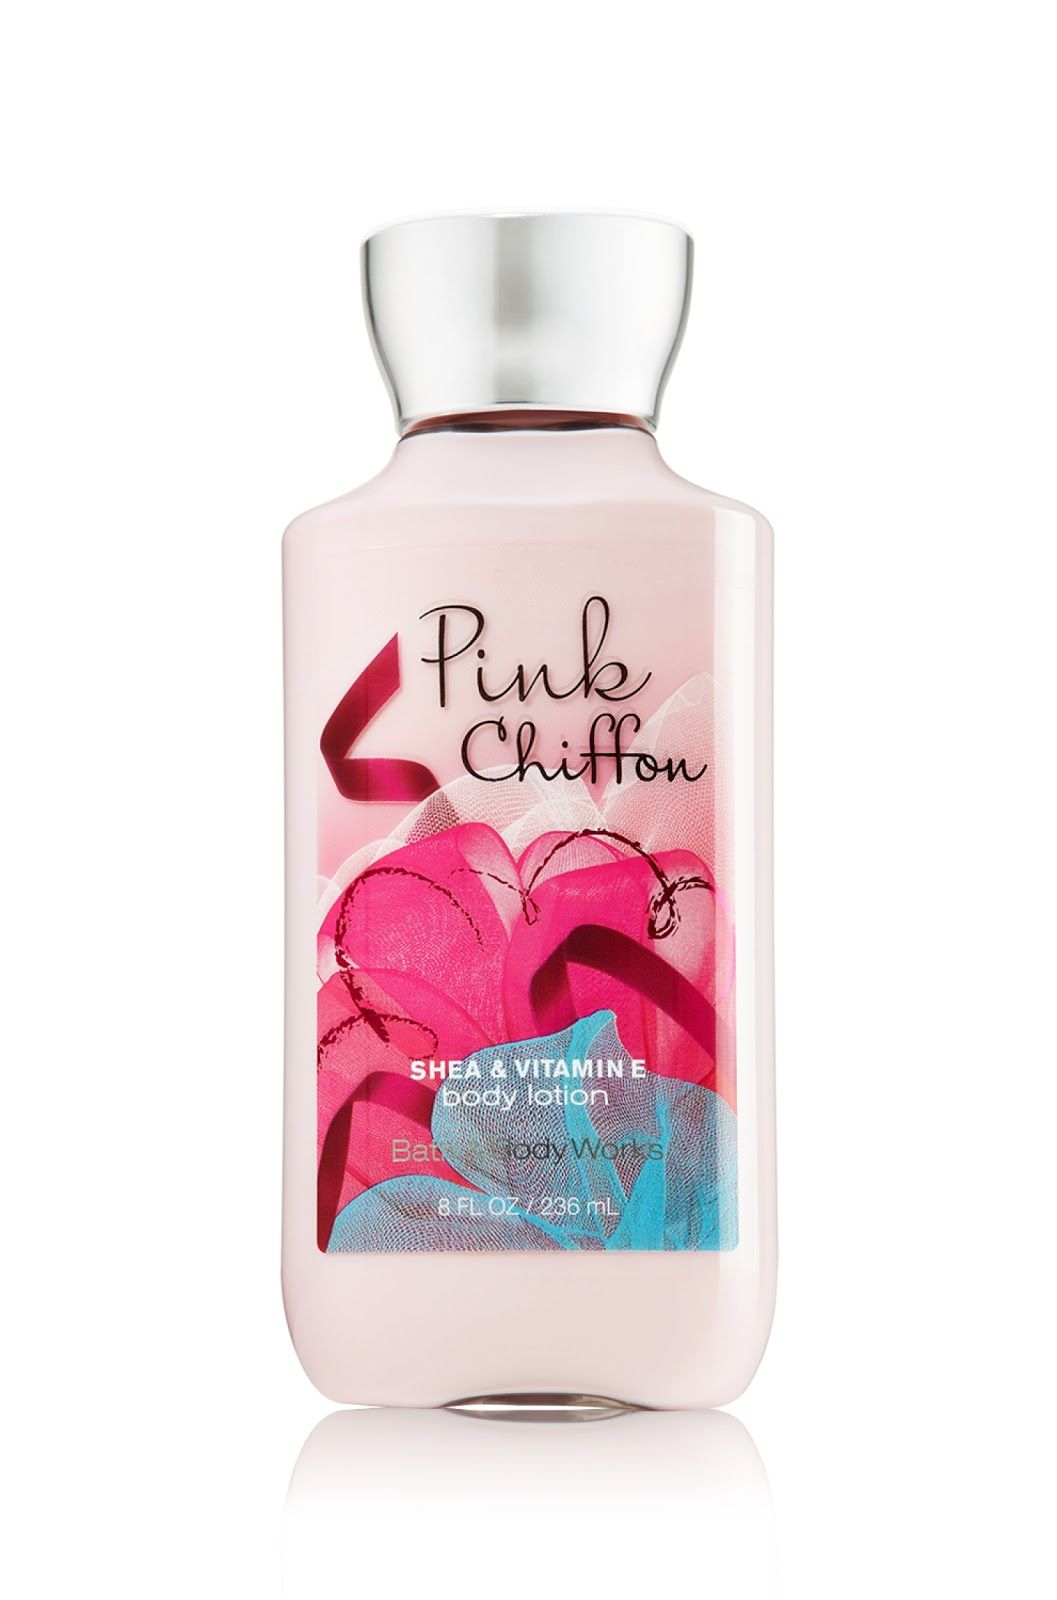 Bath Body Works Pink Chiffon Body Lotion By Eileentanbiz